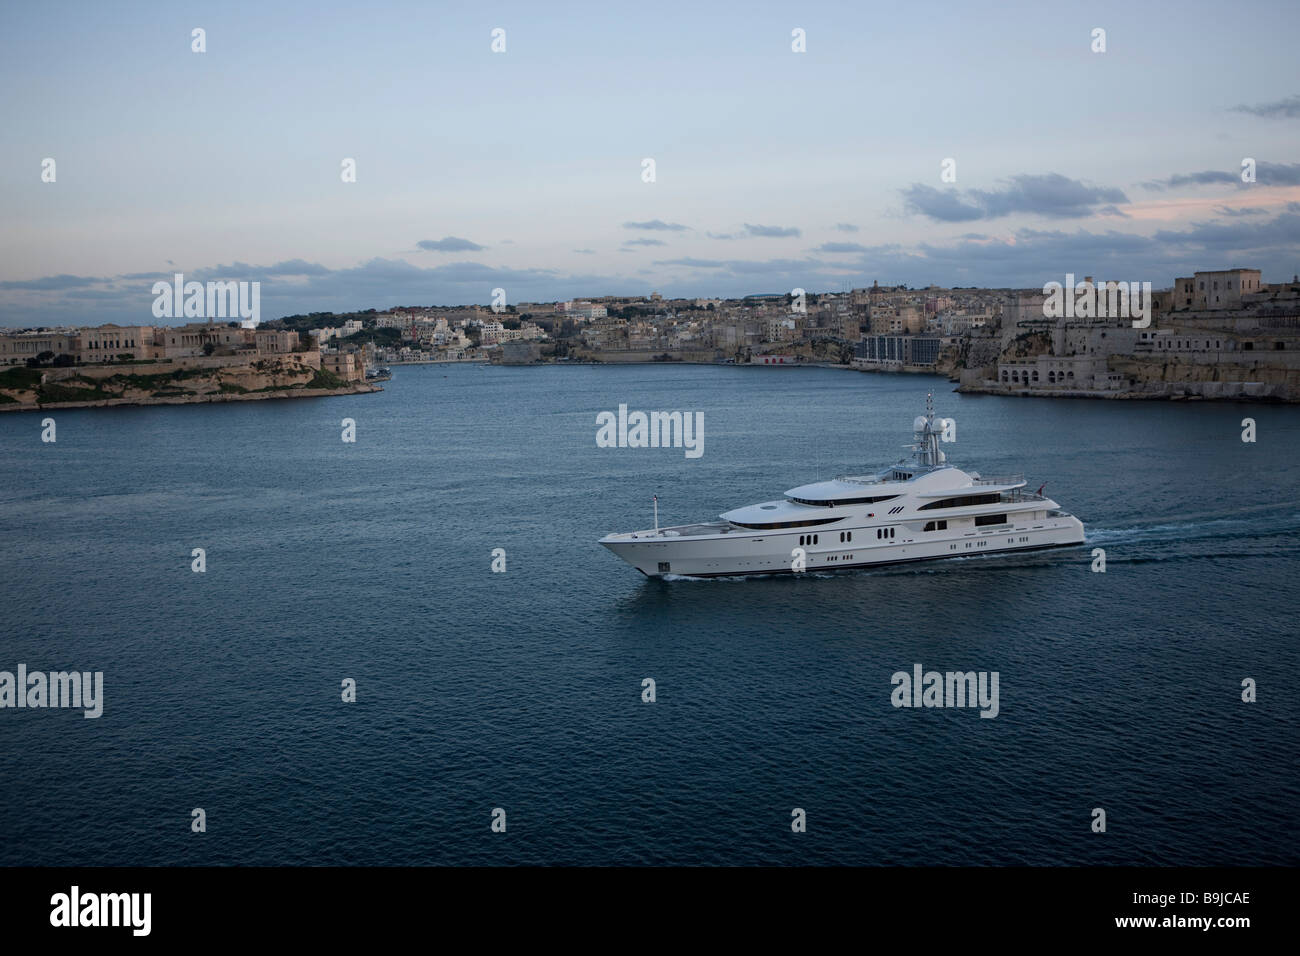 View of Senglea from Valletta, and the big yacht Anna in the